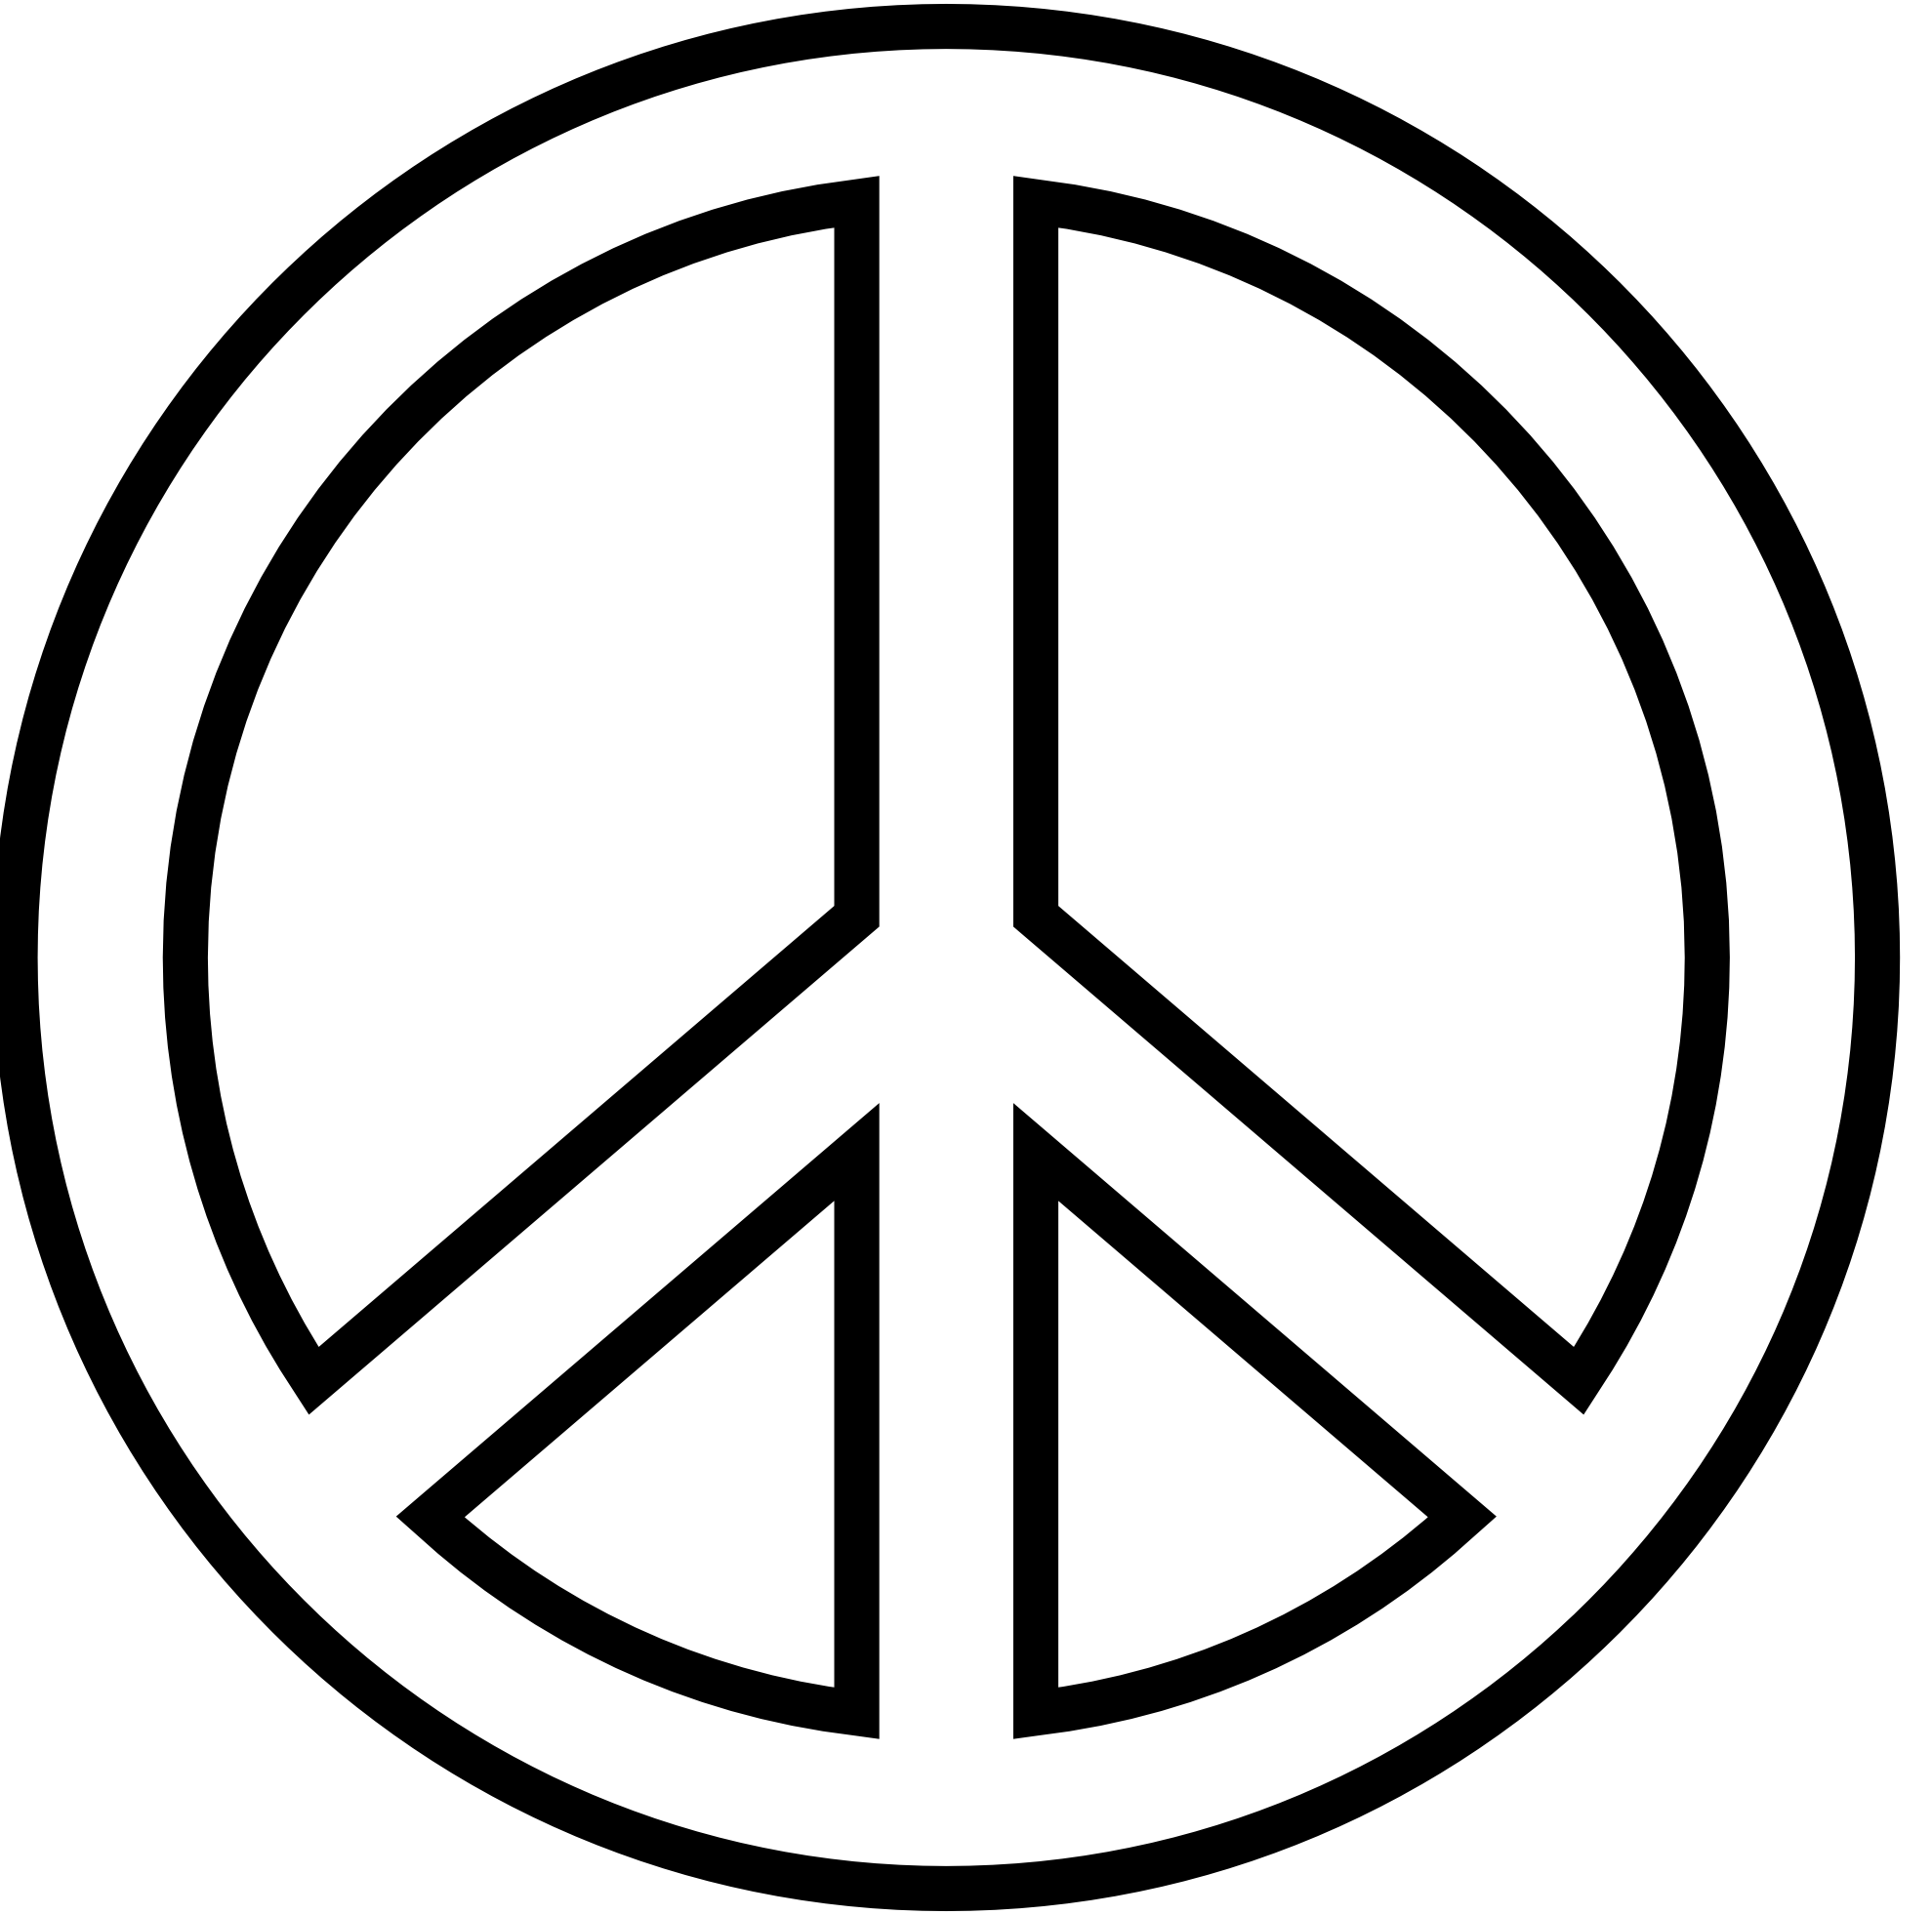 Peace is an occurrence of harmony characterized by lack of violence peace symbol coloring pages free online printable coloring pages sheets for kids get the latest free peace symbol coloring pages images favorite coloring buycottarizona Choice Image